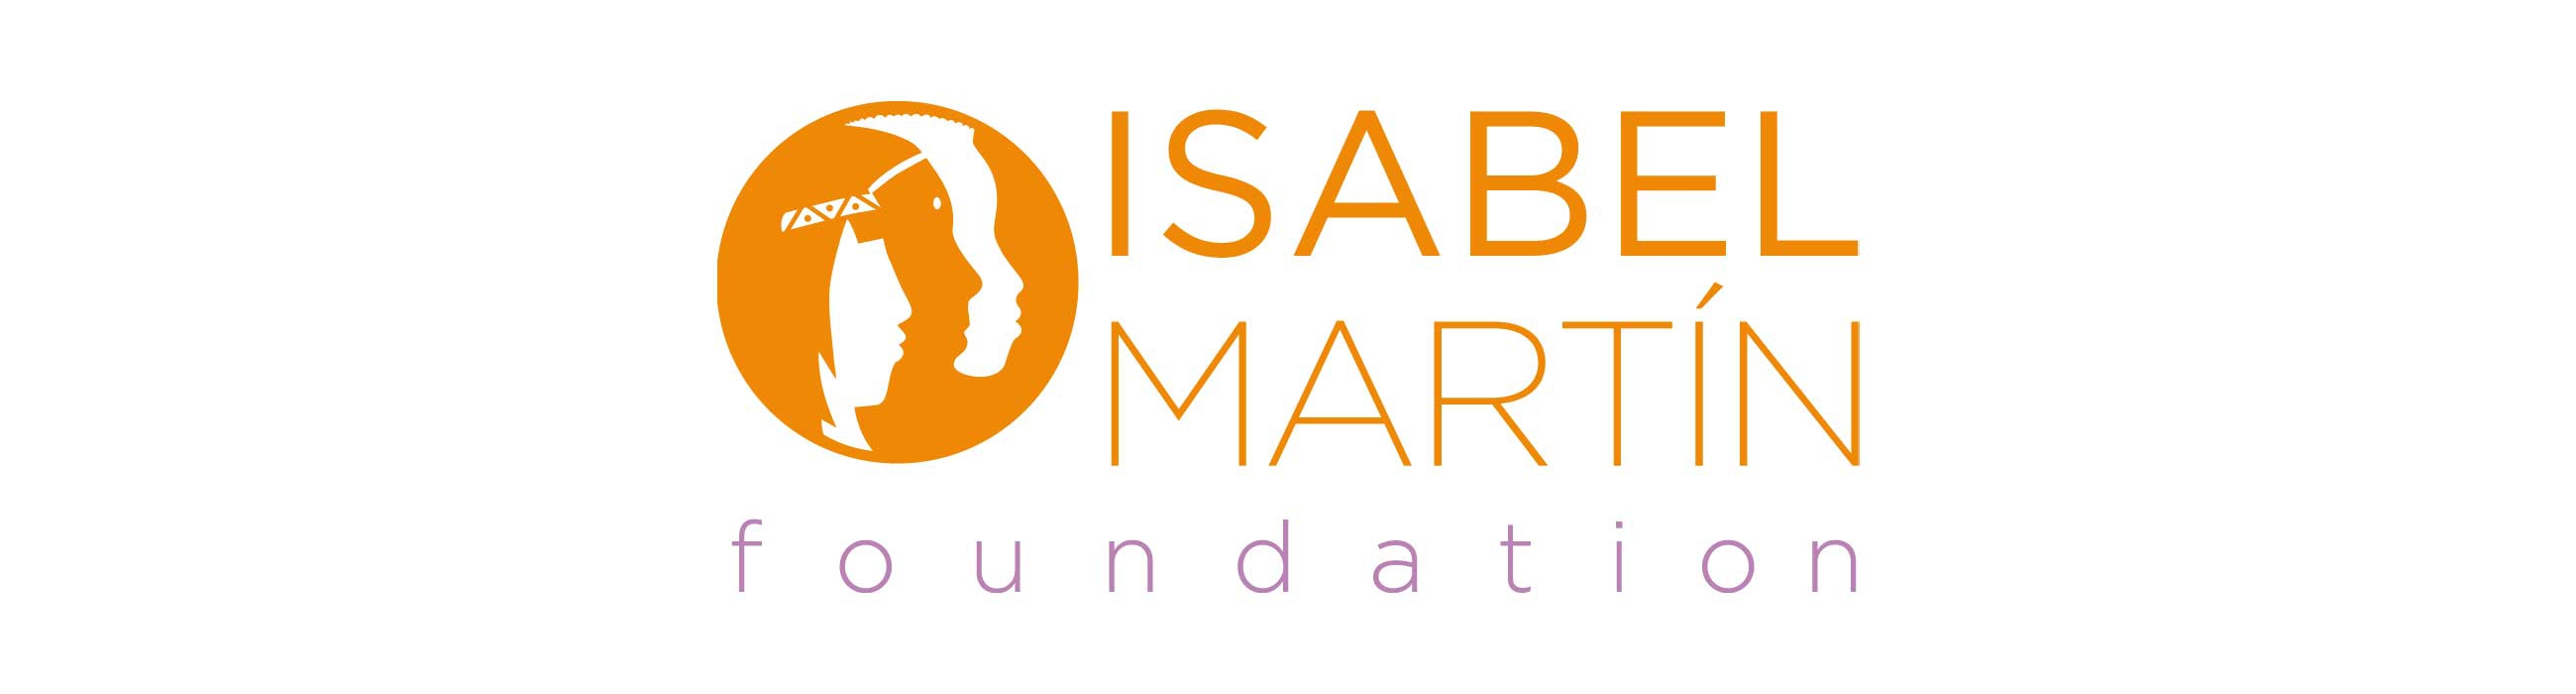 Isabel Martin Foundation